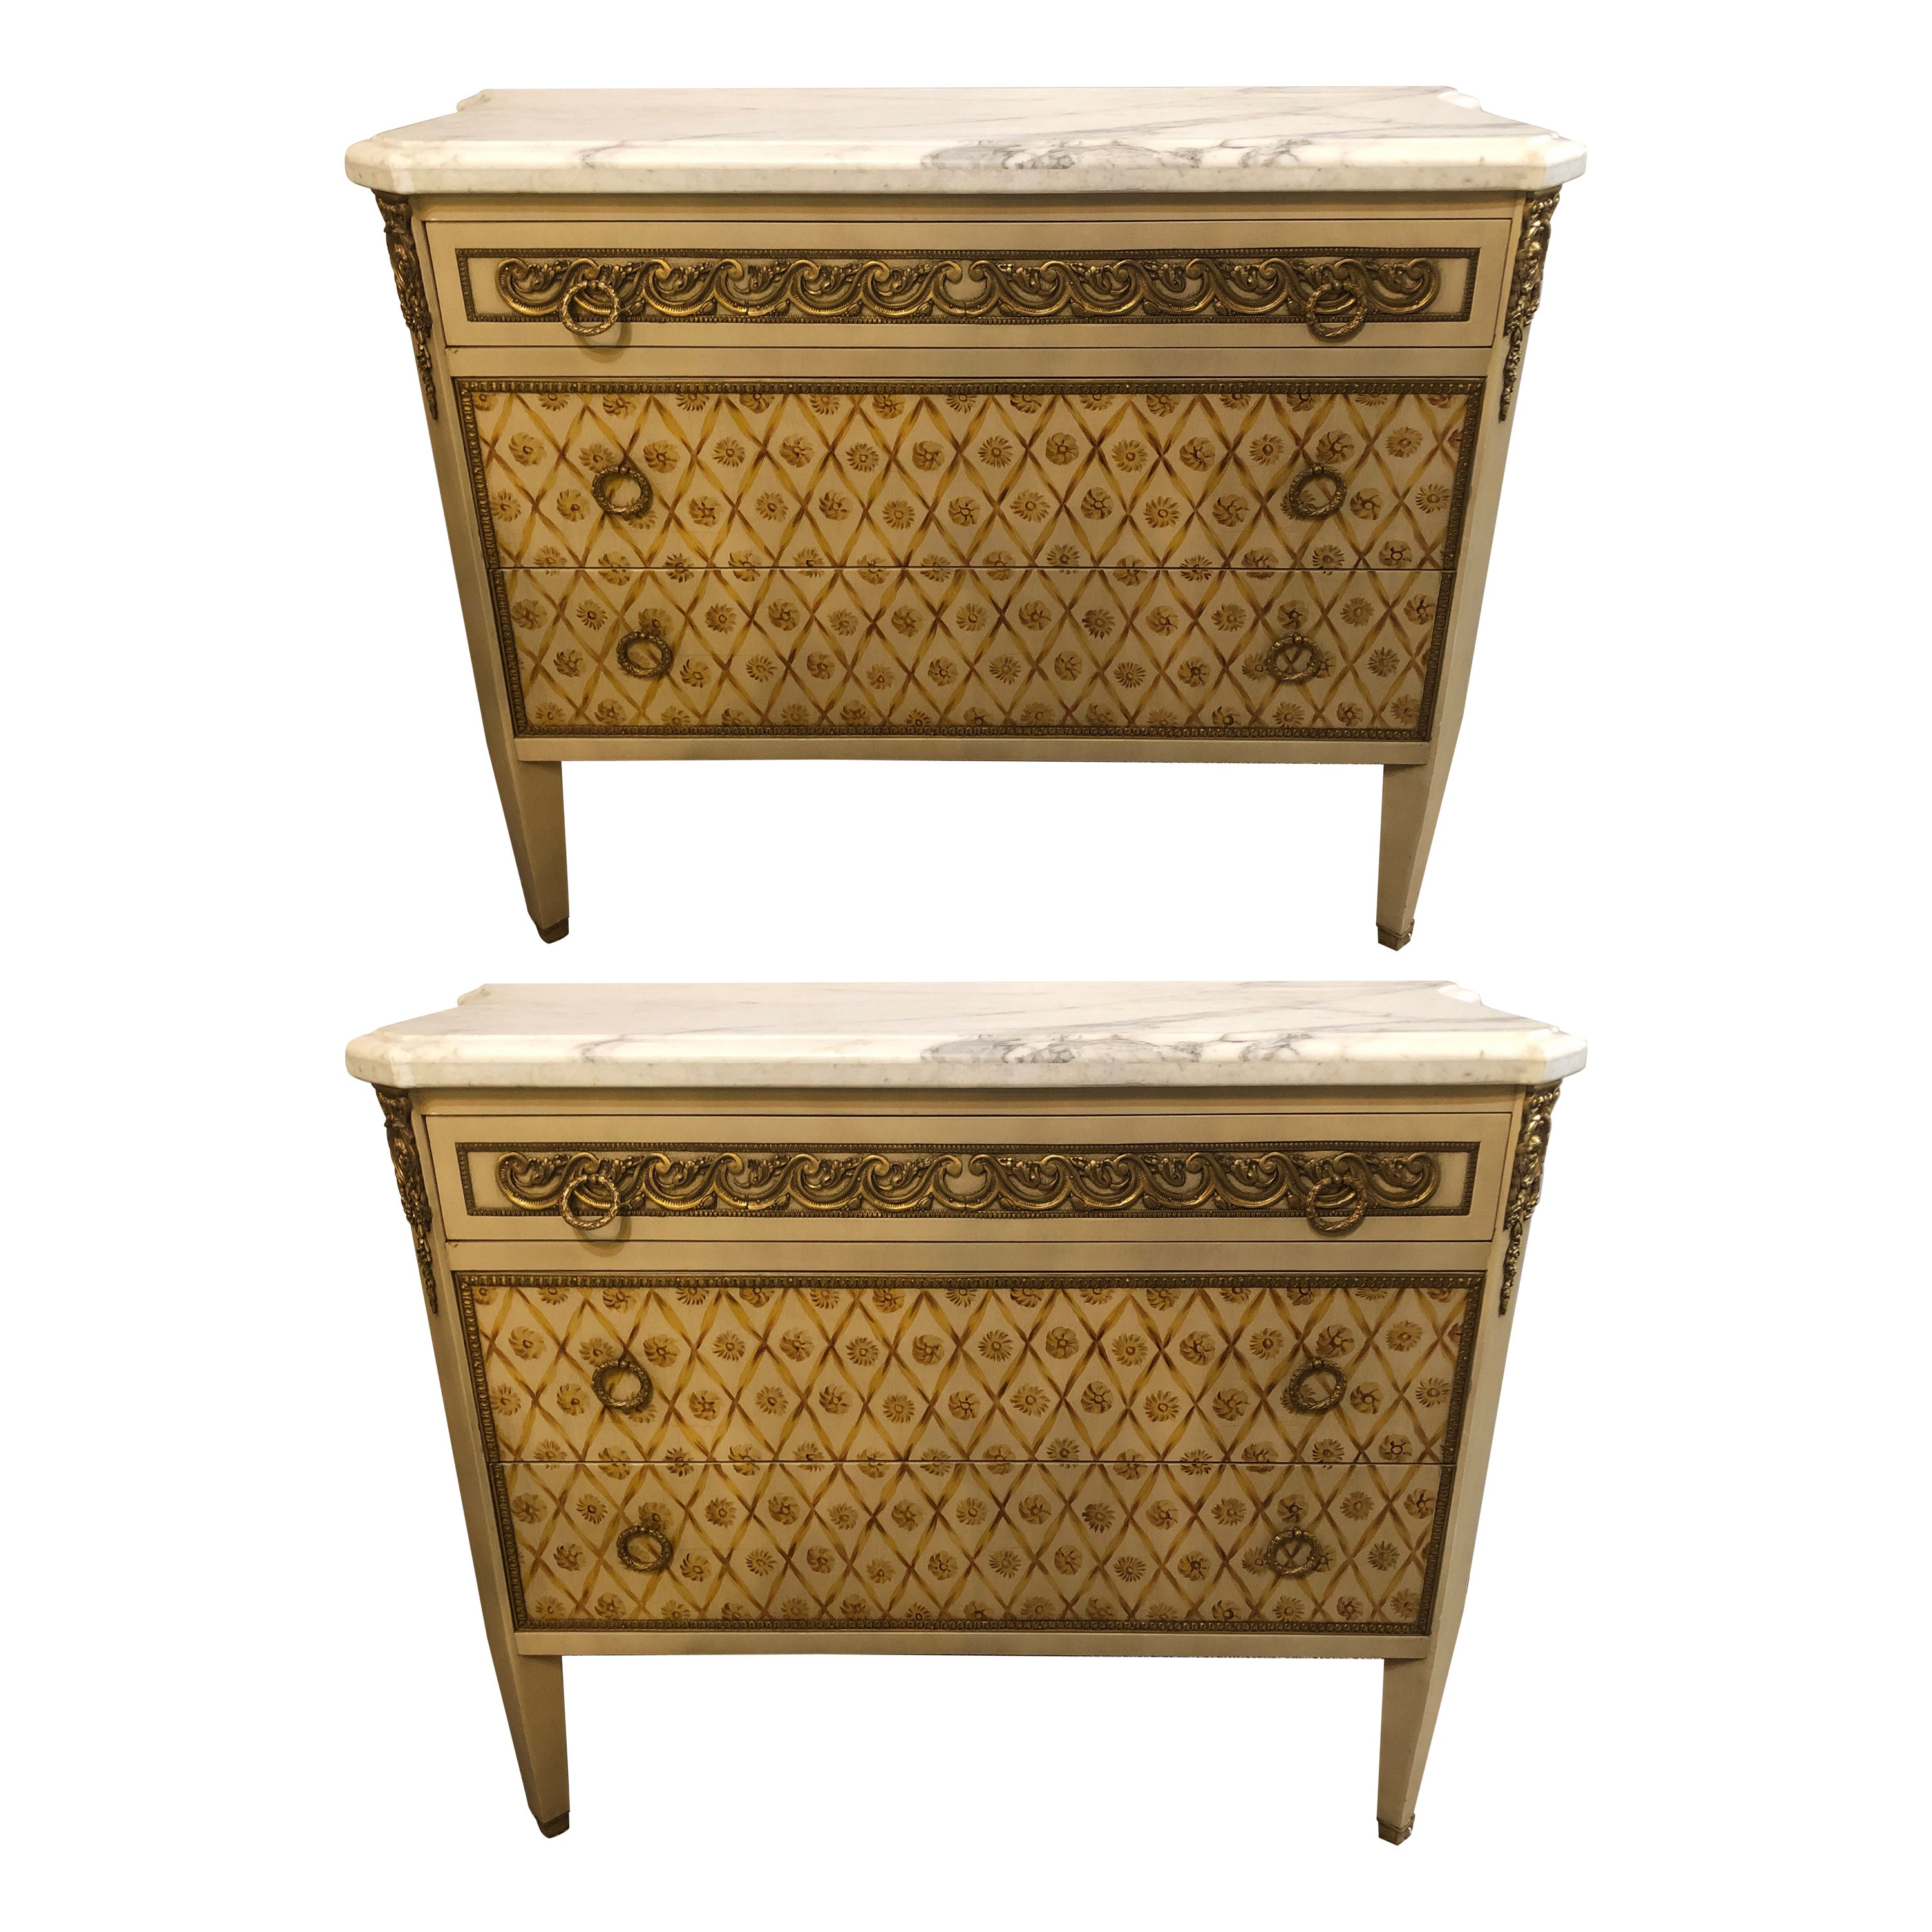 Hollywood Regency Maison Jansen Style Bronze Mounted Commodes Chests Nightstands